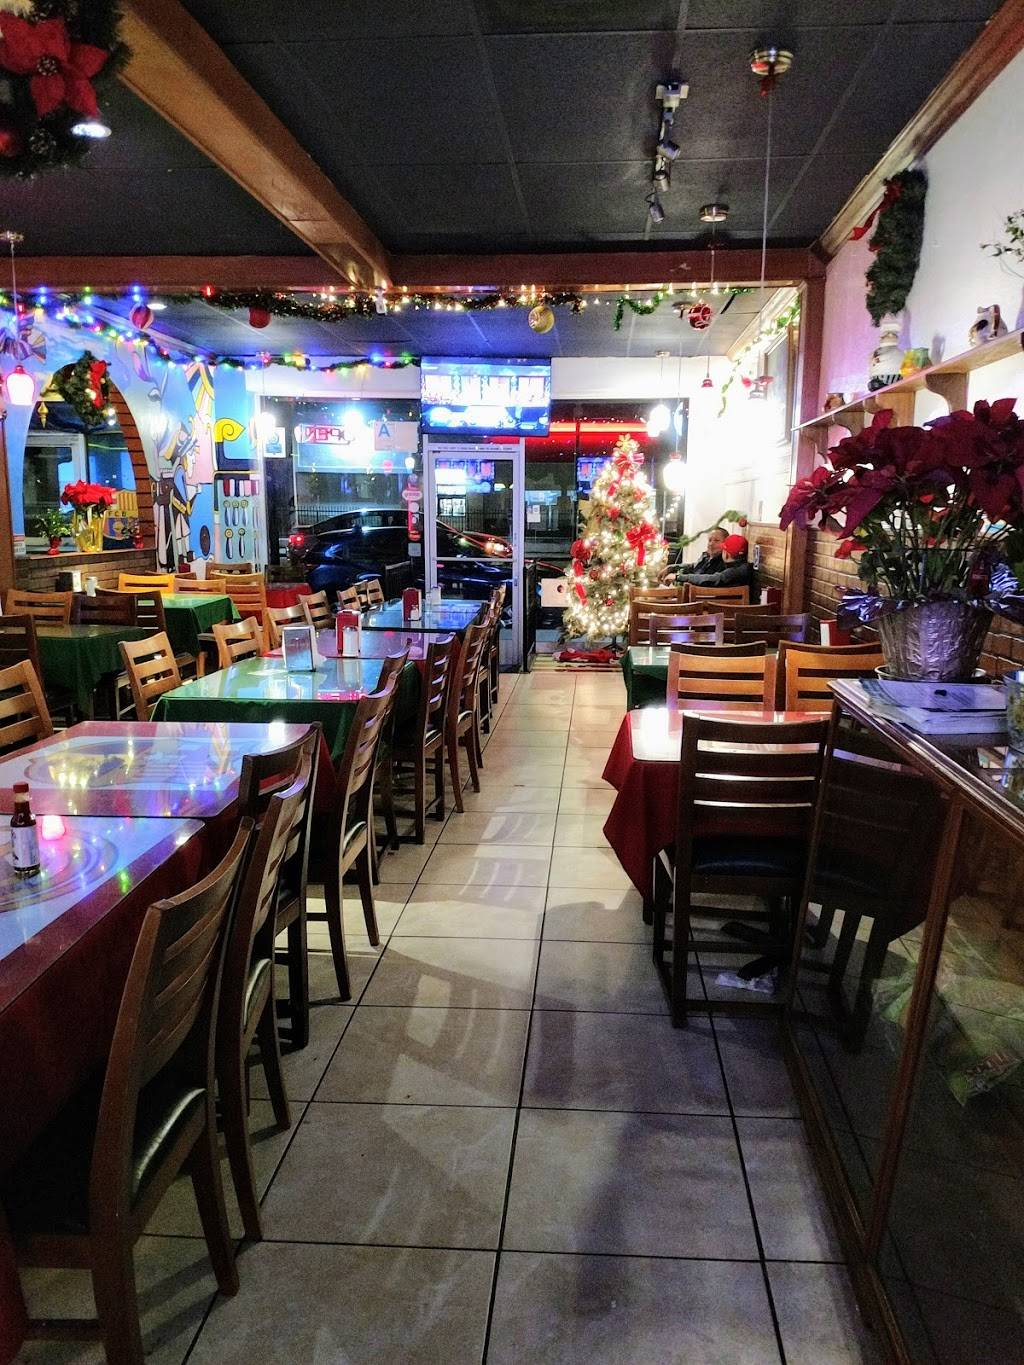 El Pulgarcito De America Restaurant 1608 W Washington Blvd